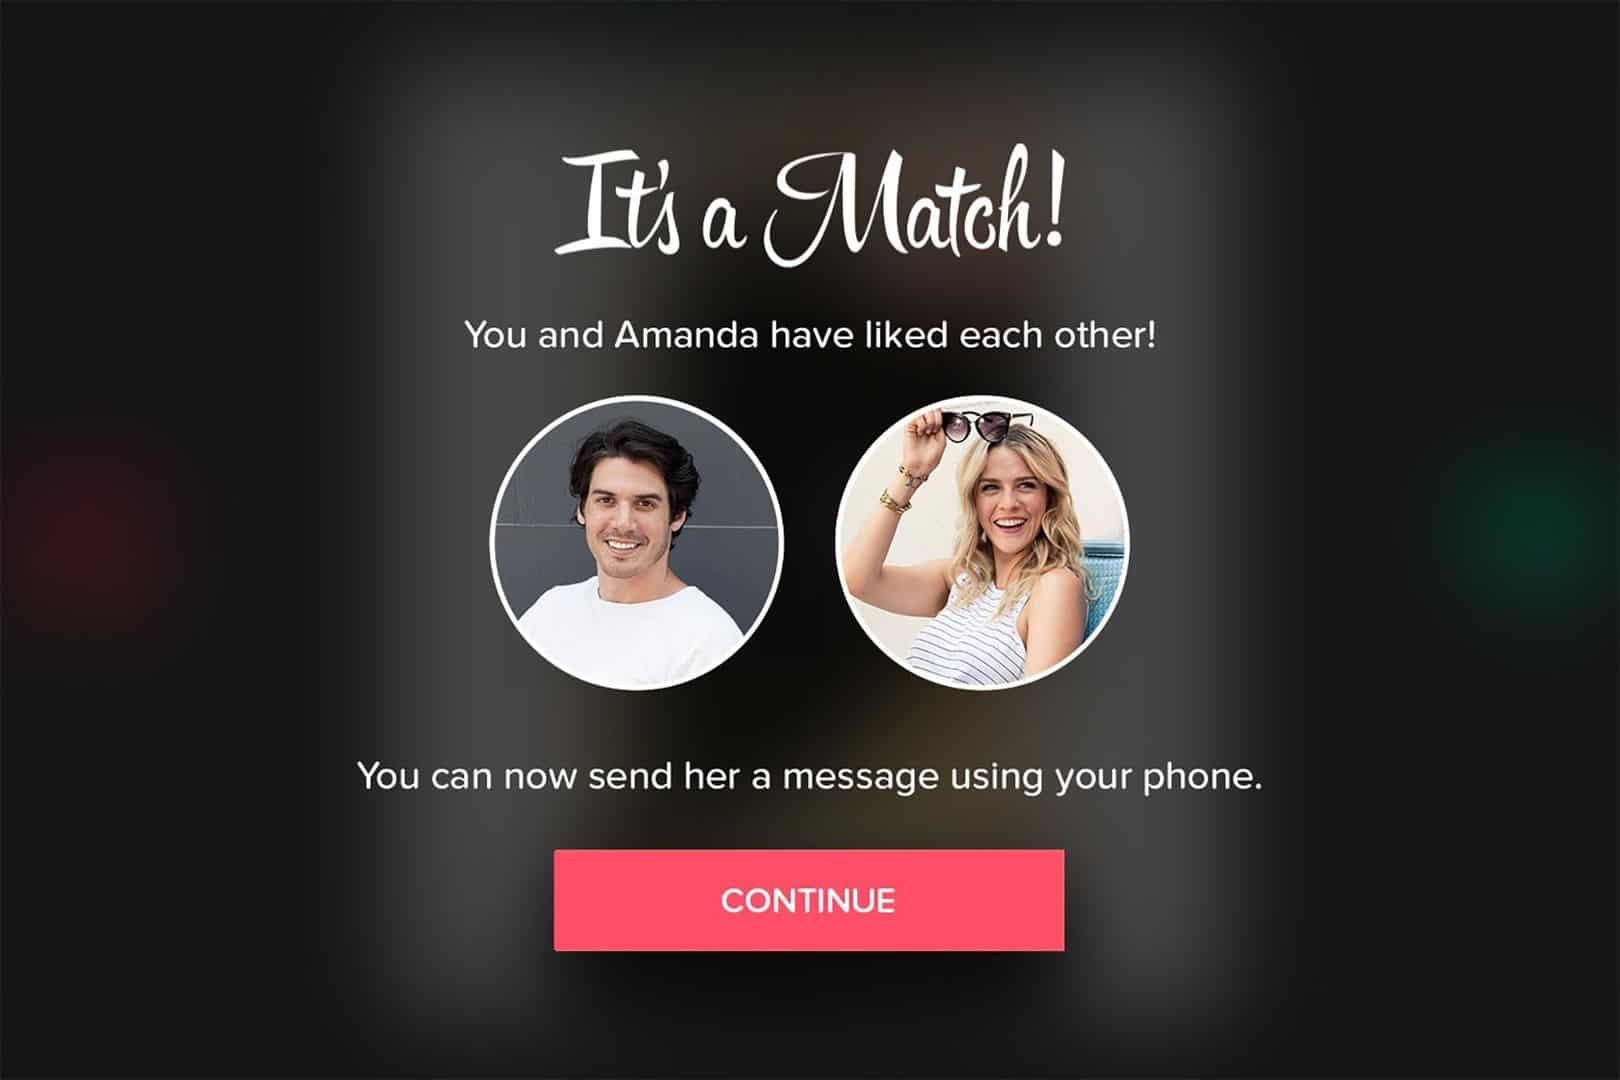 Come aumentare le vostre possibilità di dating online